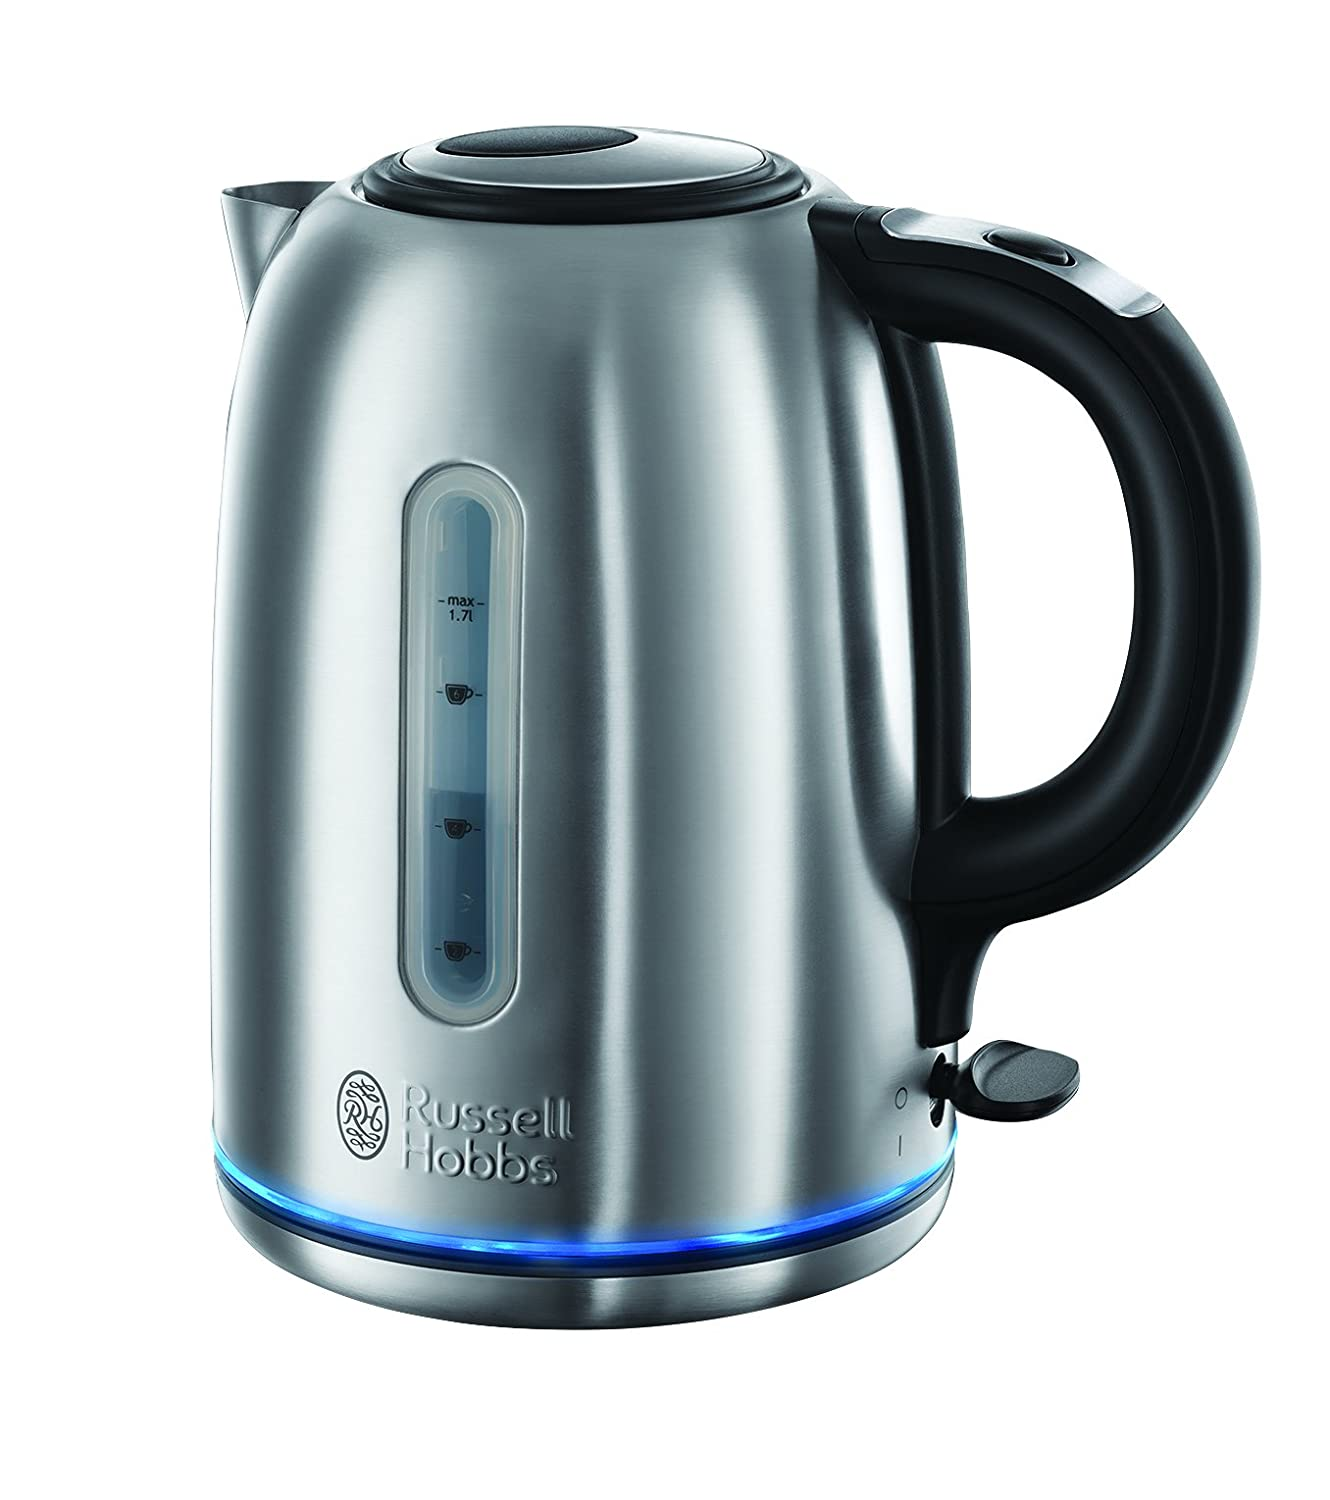 Best Kettles Round Up The Russell Hobbs 20460 Buckingham Quiet Boil Kettle